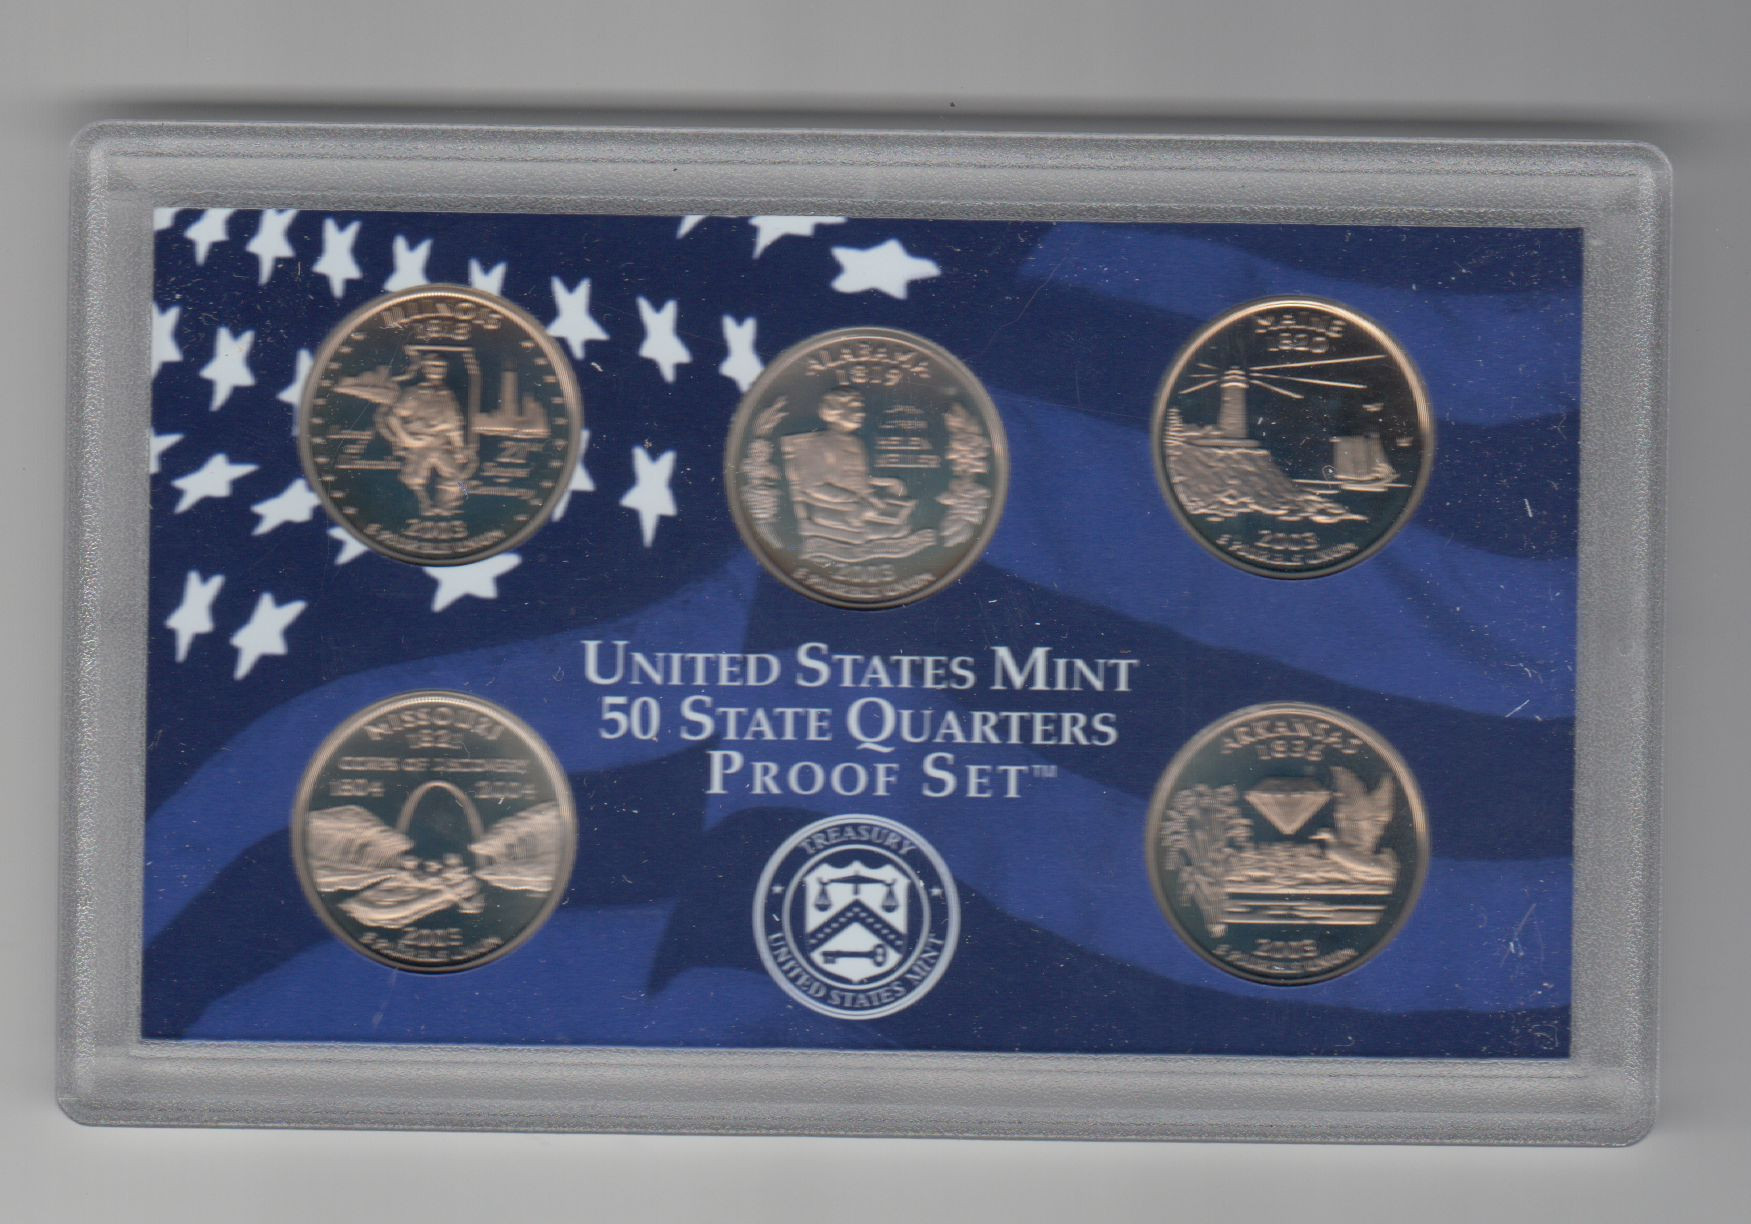 Elegant Value Of 5 Coins 50 State Quarters Proof Set In Box with State Quarter Set Value Of Lovely 2014 D Everglades National Park Quarter Value America State Quarter Set Value